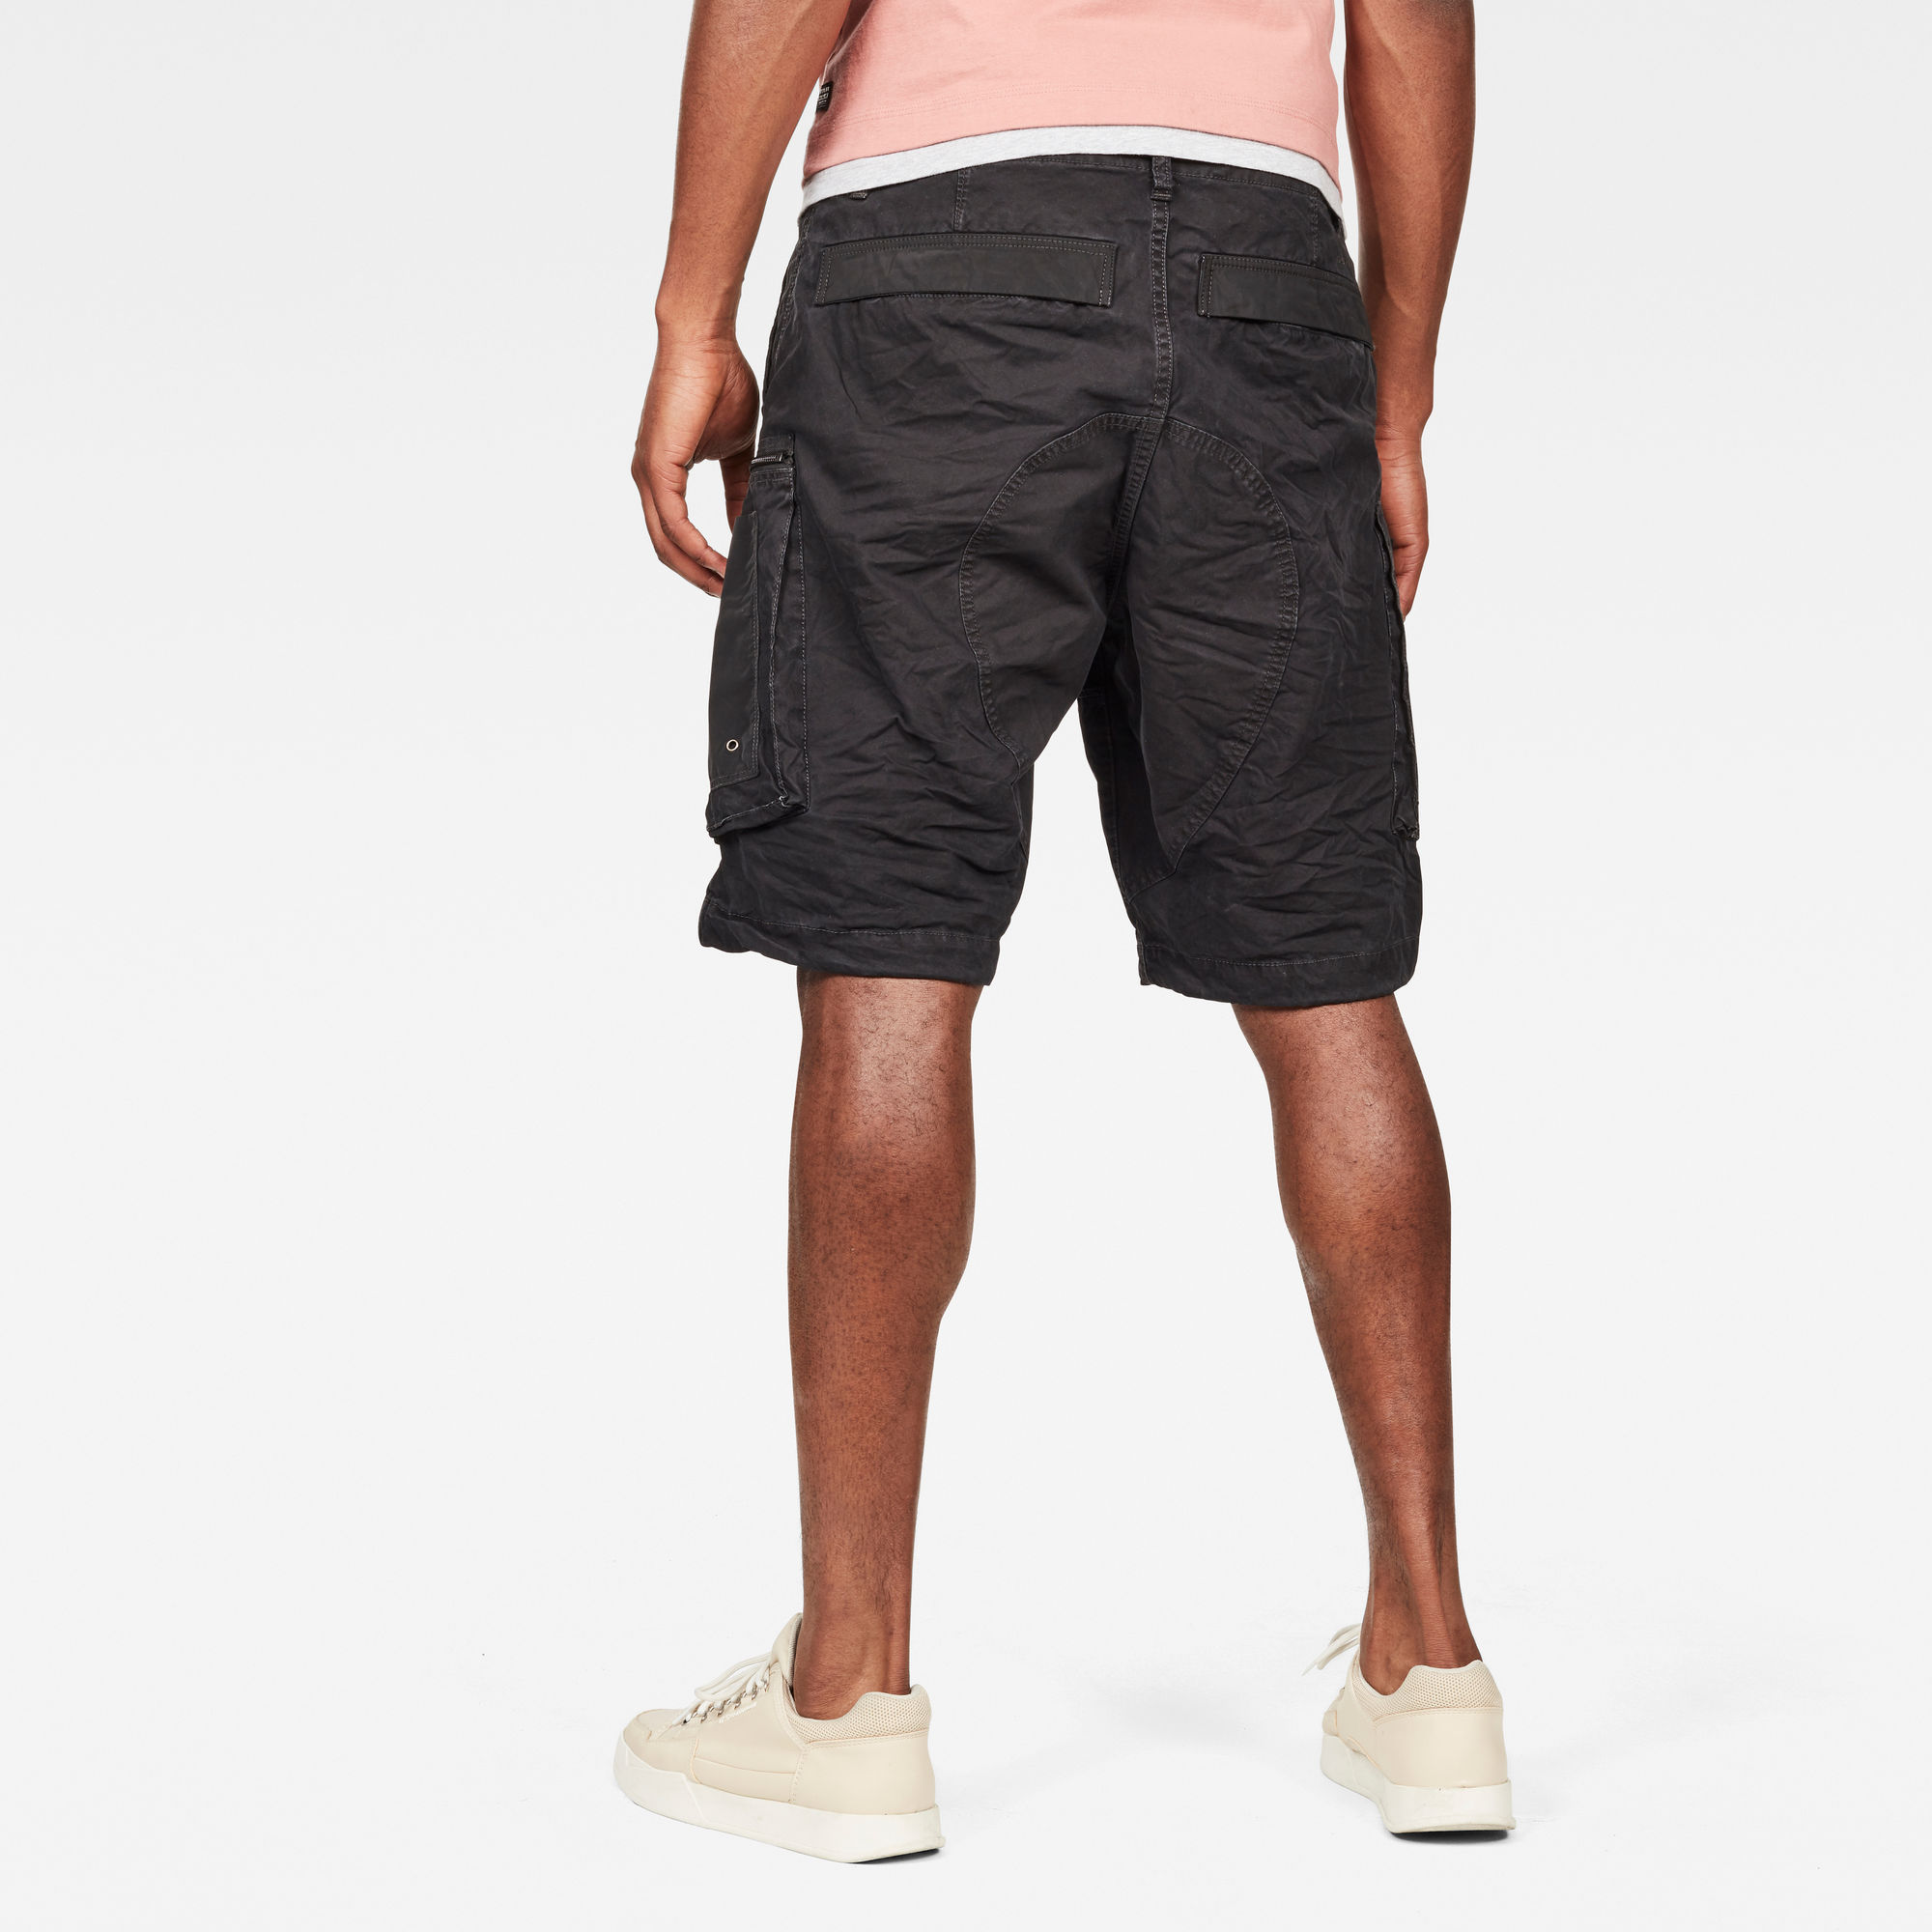 G-Star RAW Arris Relaxed Shorts